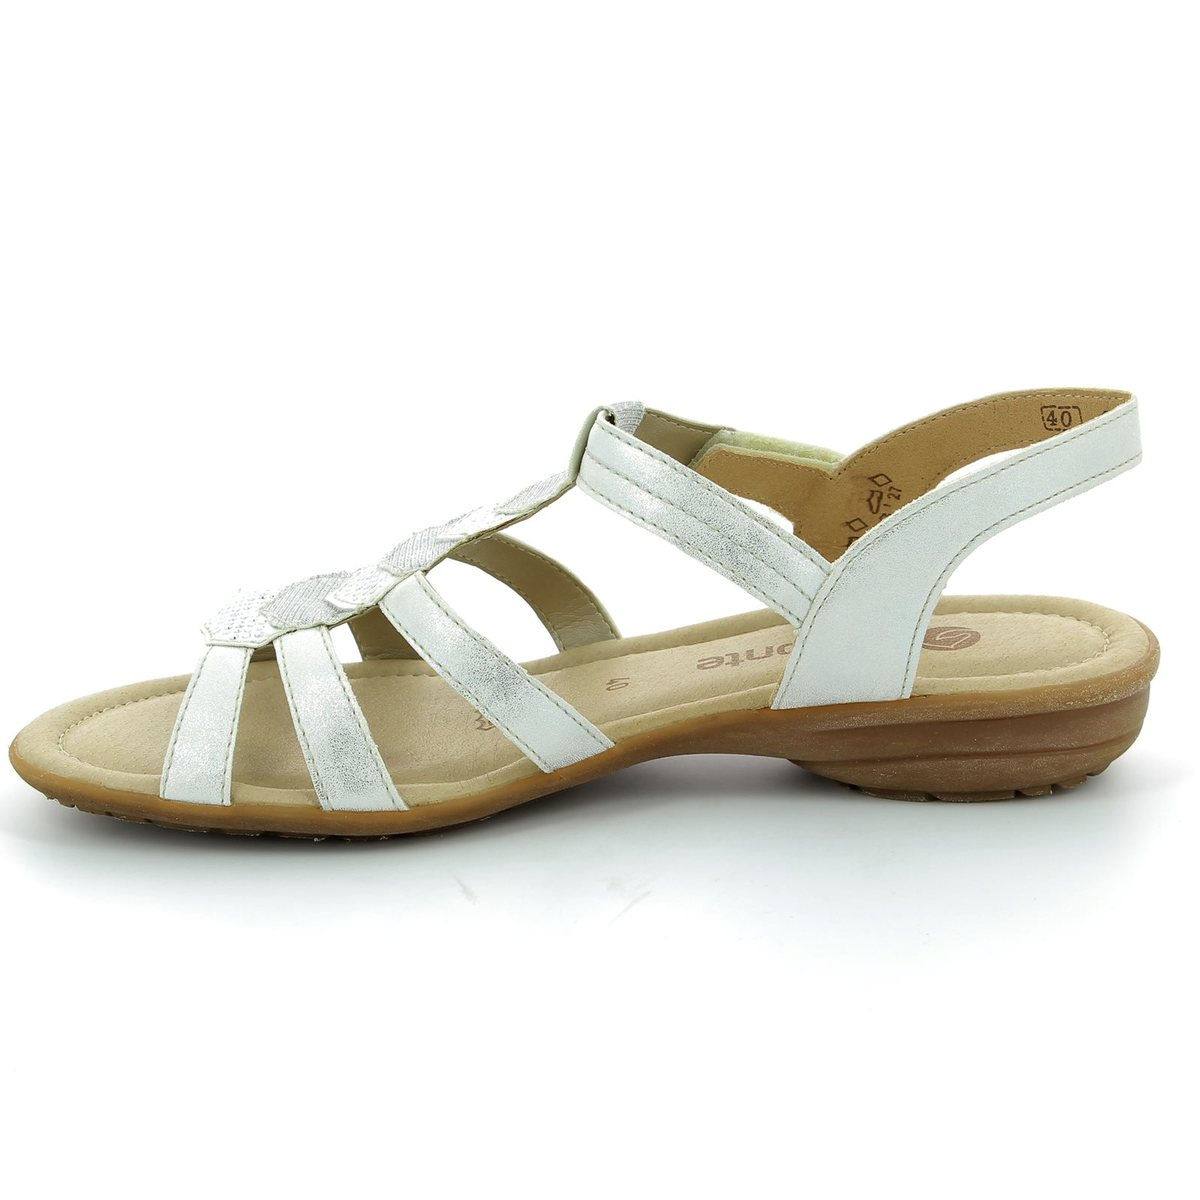 33c3ddd56c00 Remonte Sandals - Off white - R3637-80 ODESSA